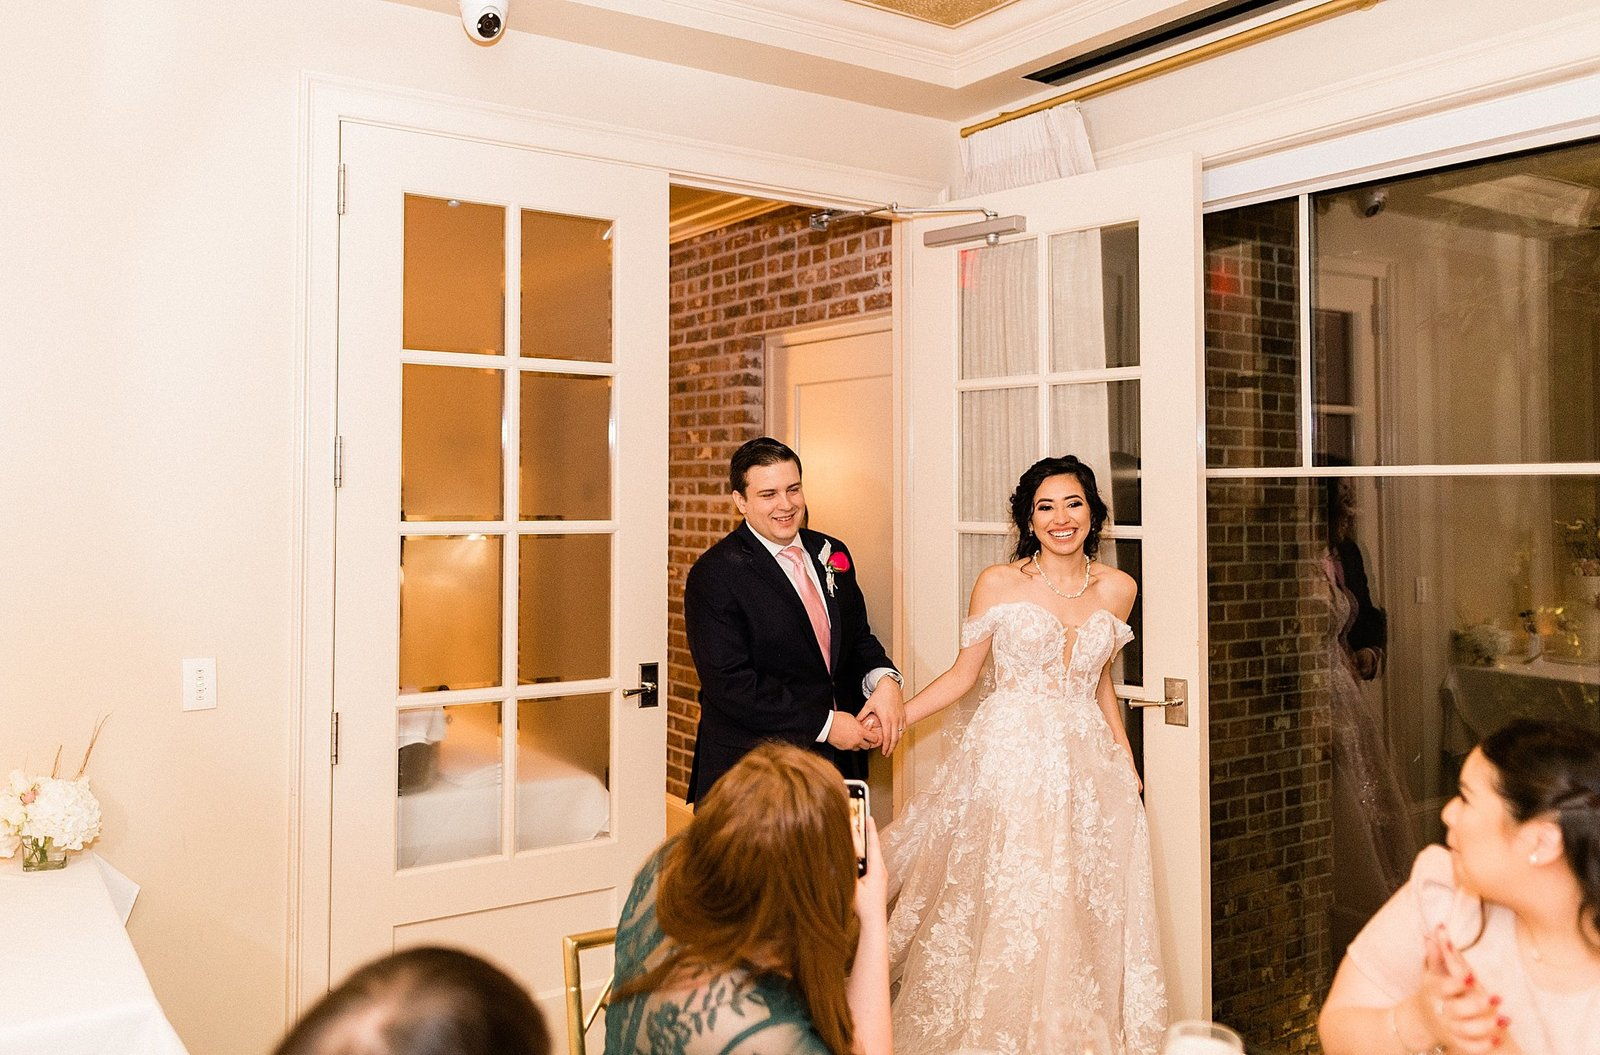 brennans of houston wedding leslie margarita photography_0079